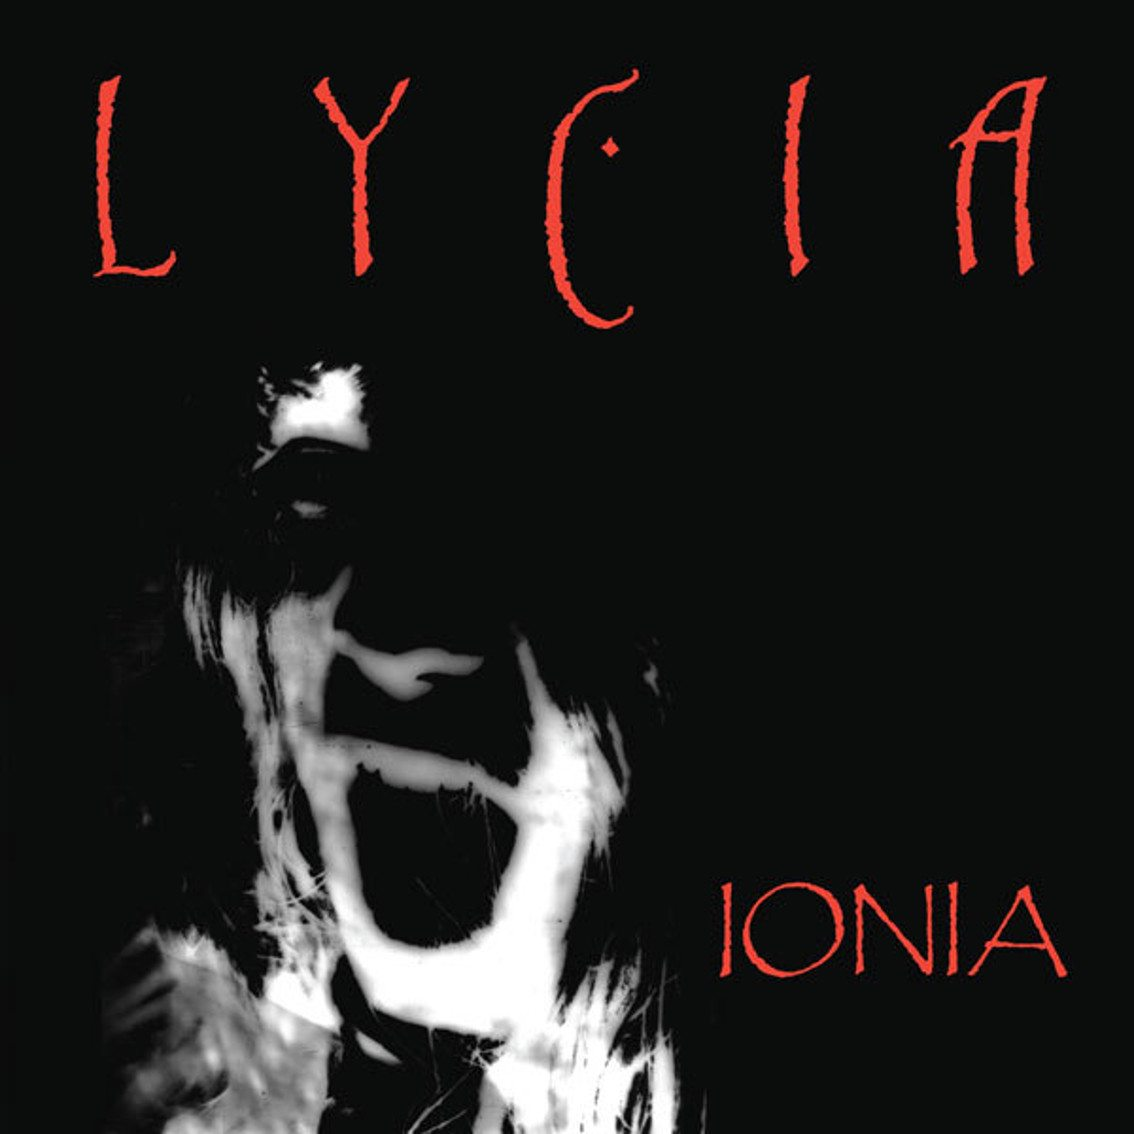 Lycia sees second - brilliant - album'Ionia' re-released via Projekt Records